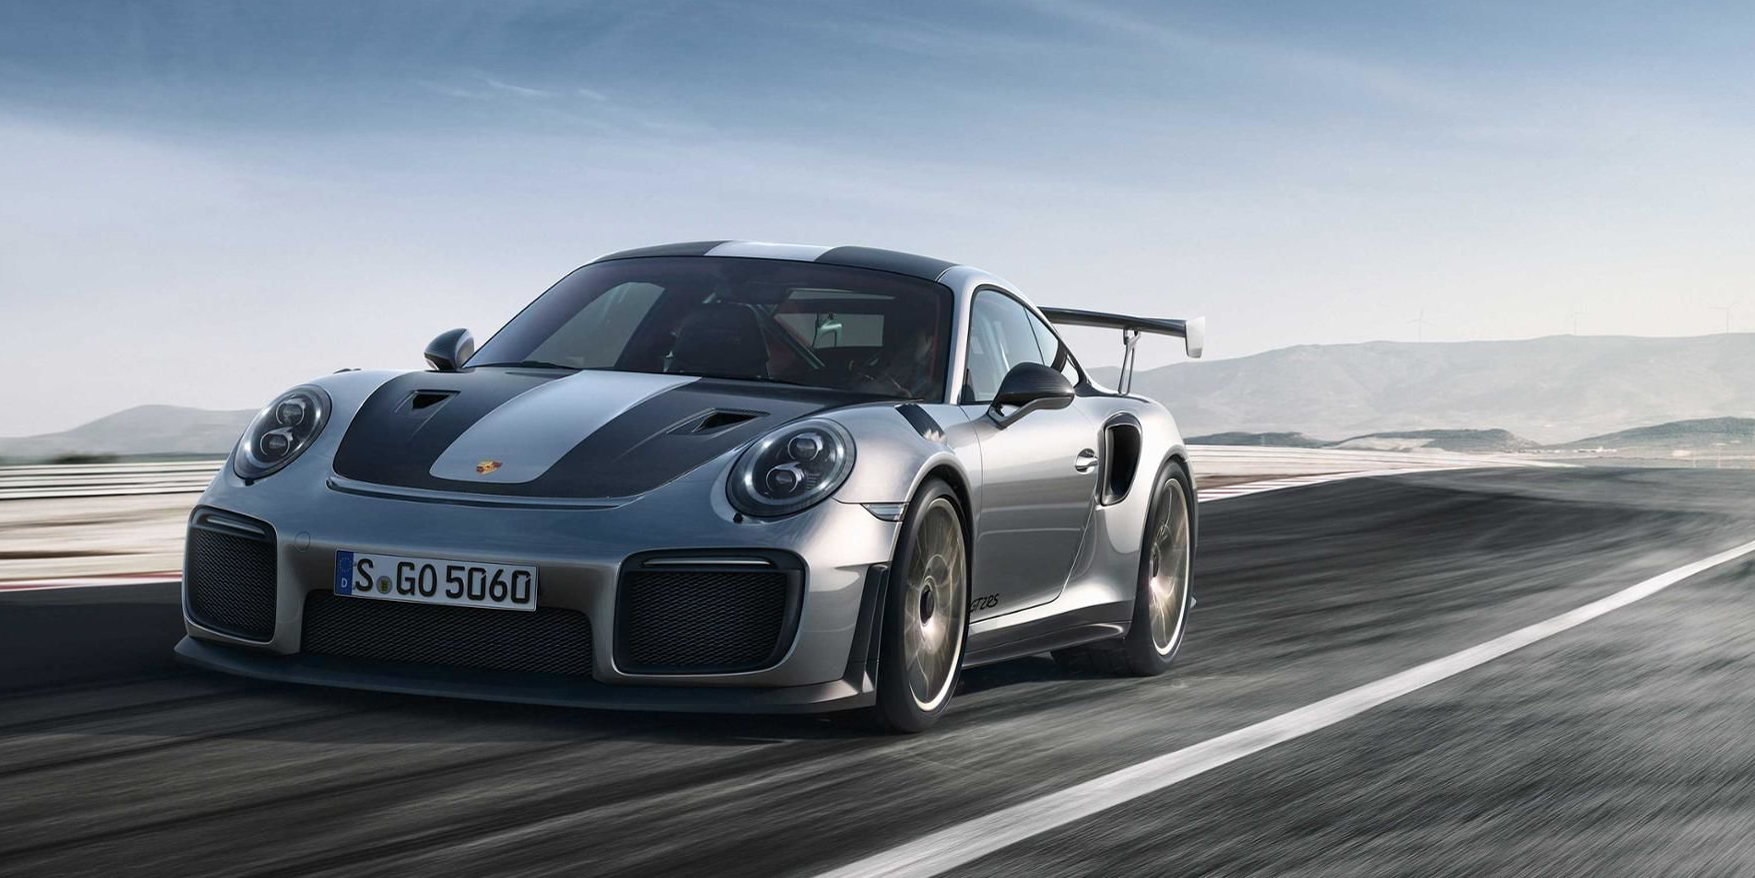 2018 porsche 911 gt2 rs officially arrives with 700 hp vwvortex. Black Bedroom Furniture Sets. Home Design Ideas